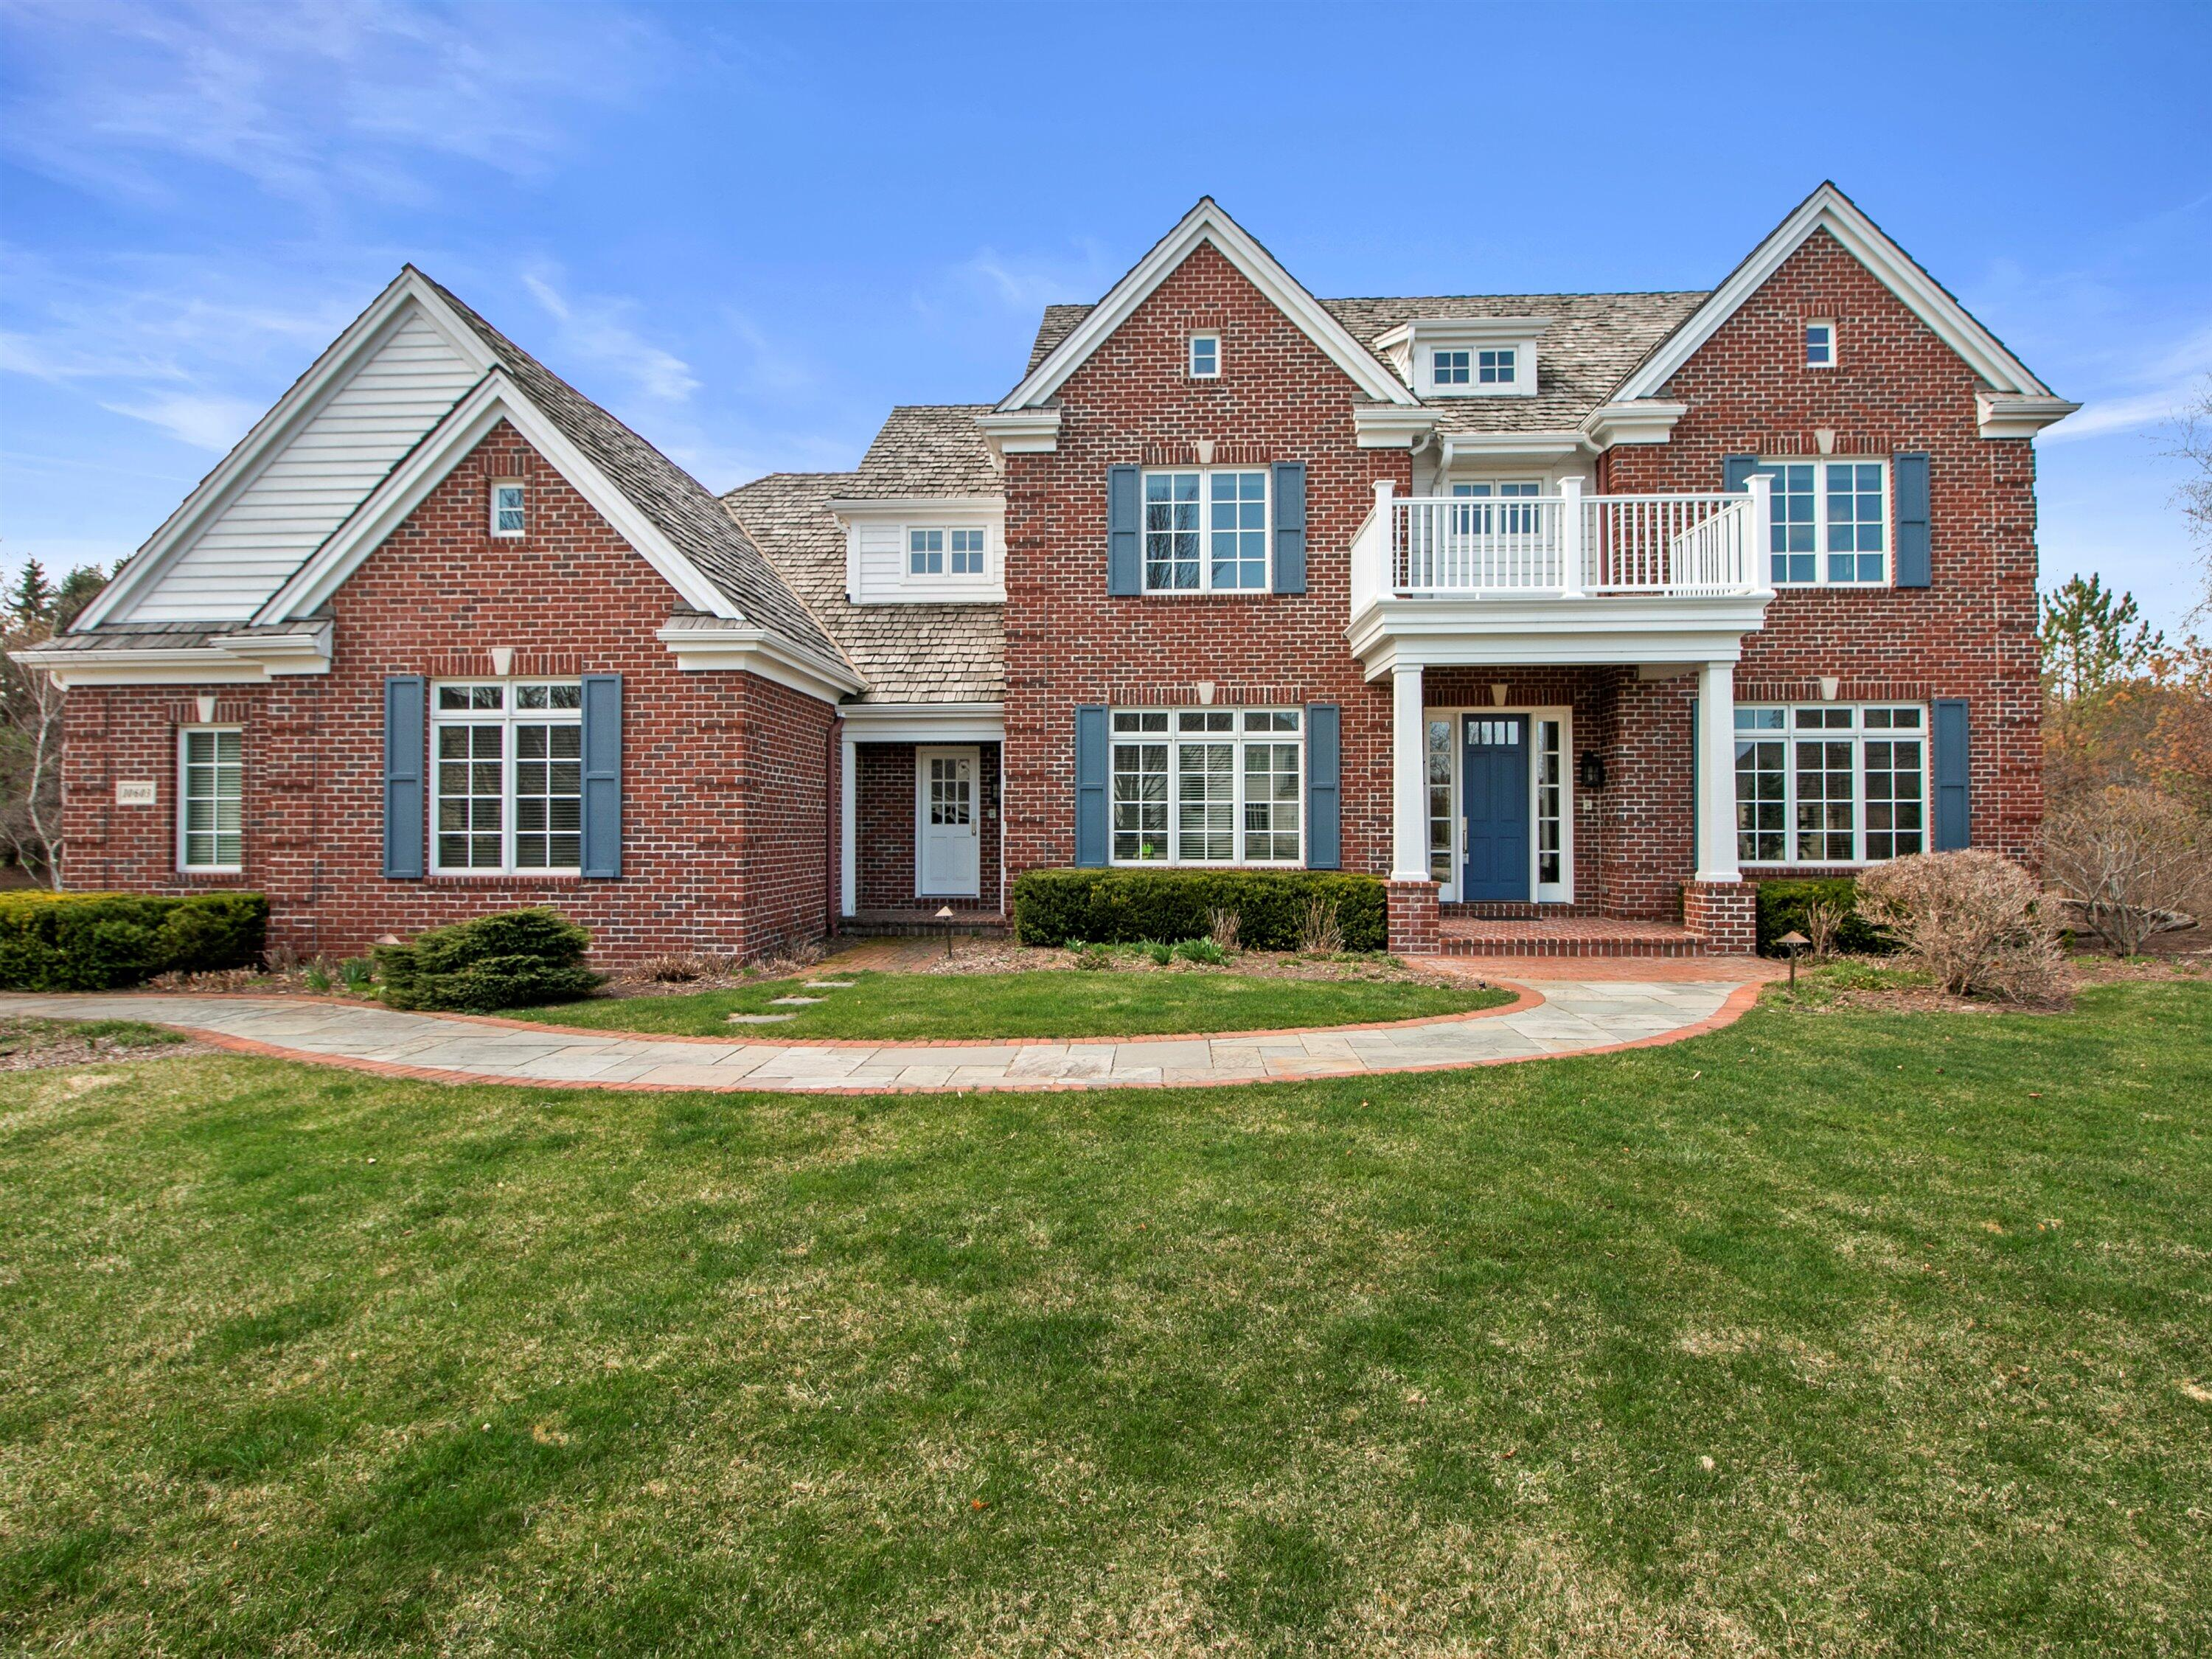 10603 N Wood Crest Dr, Mequon, WI 53092